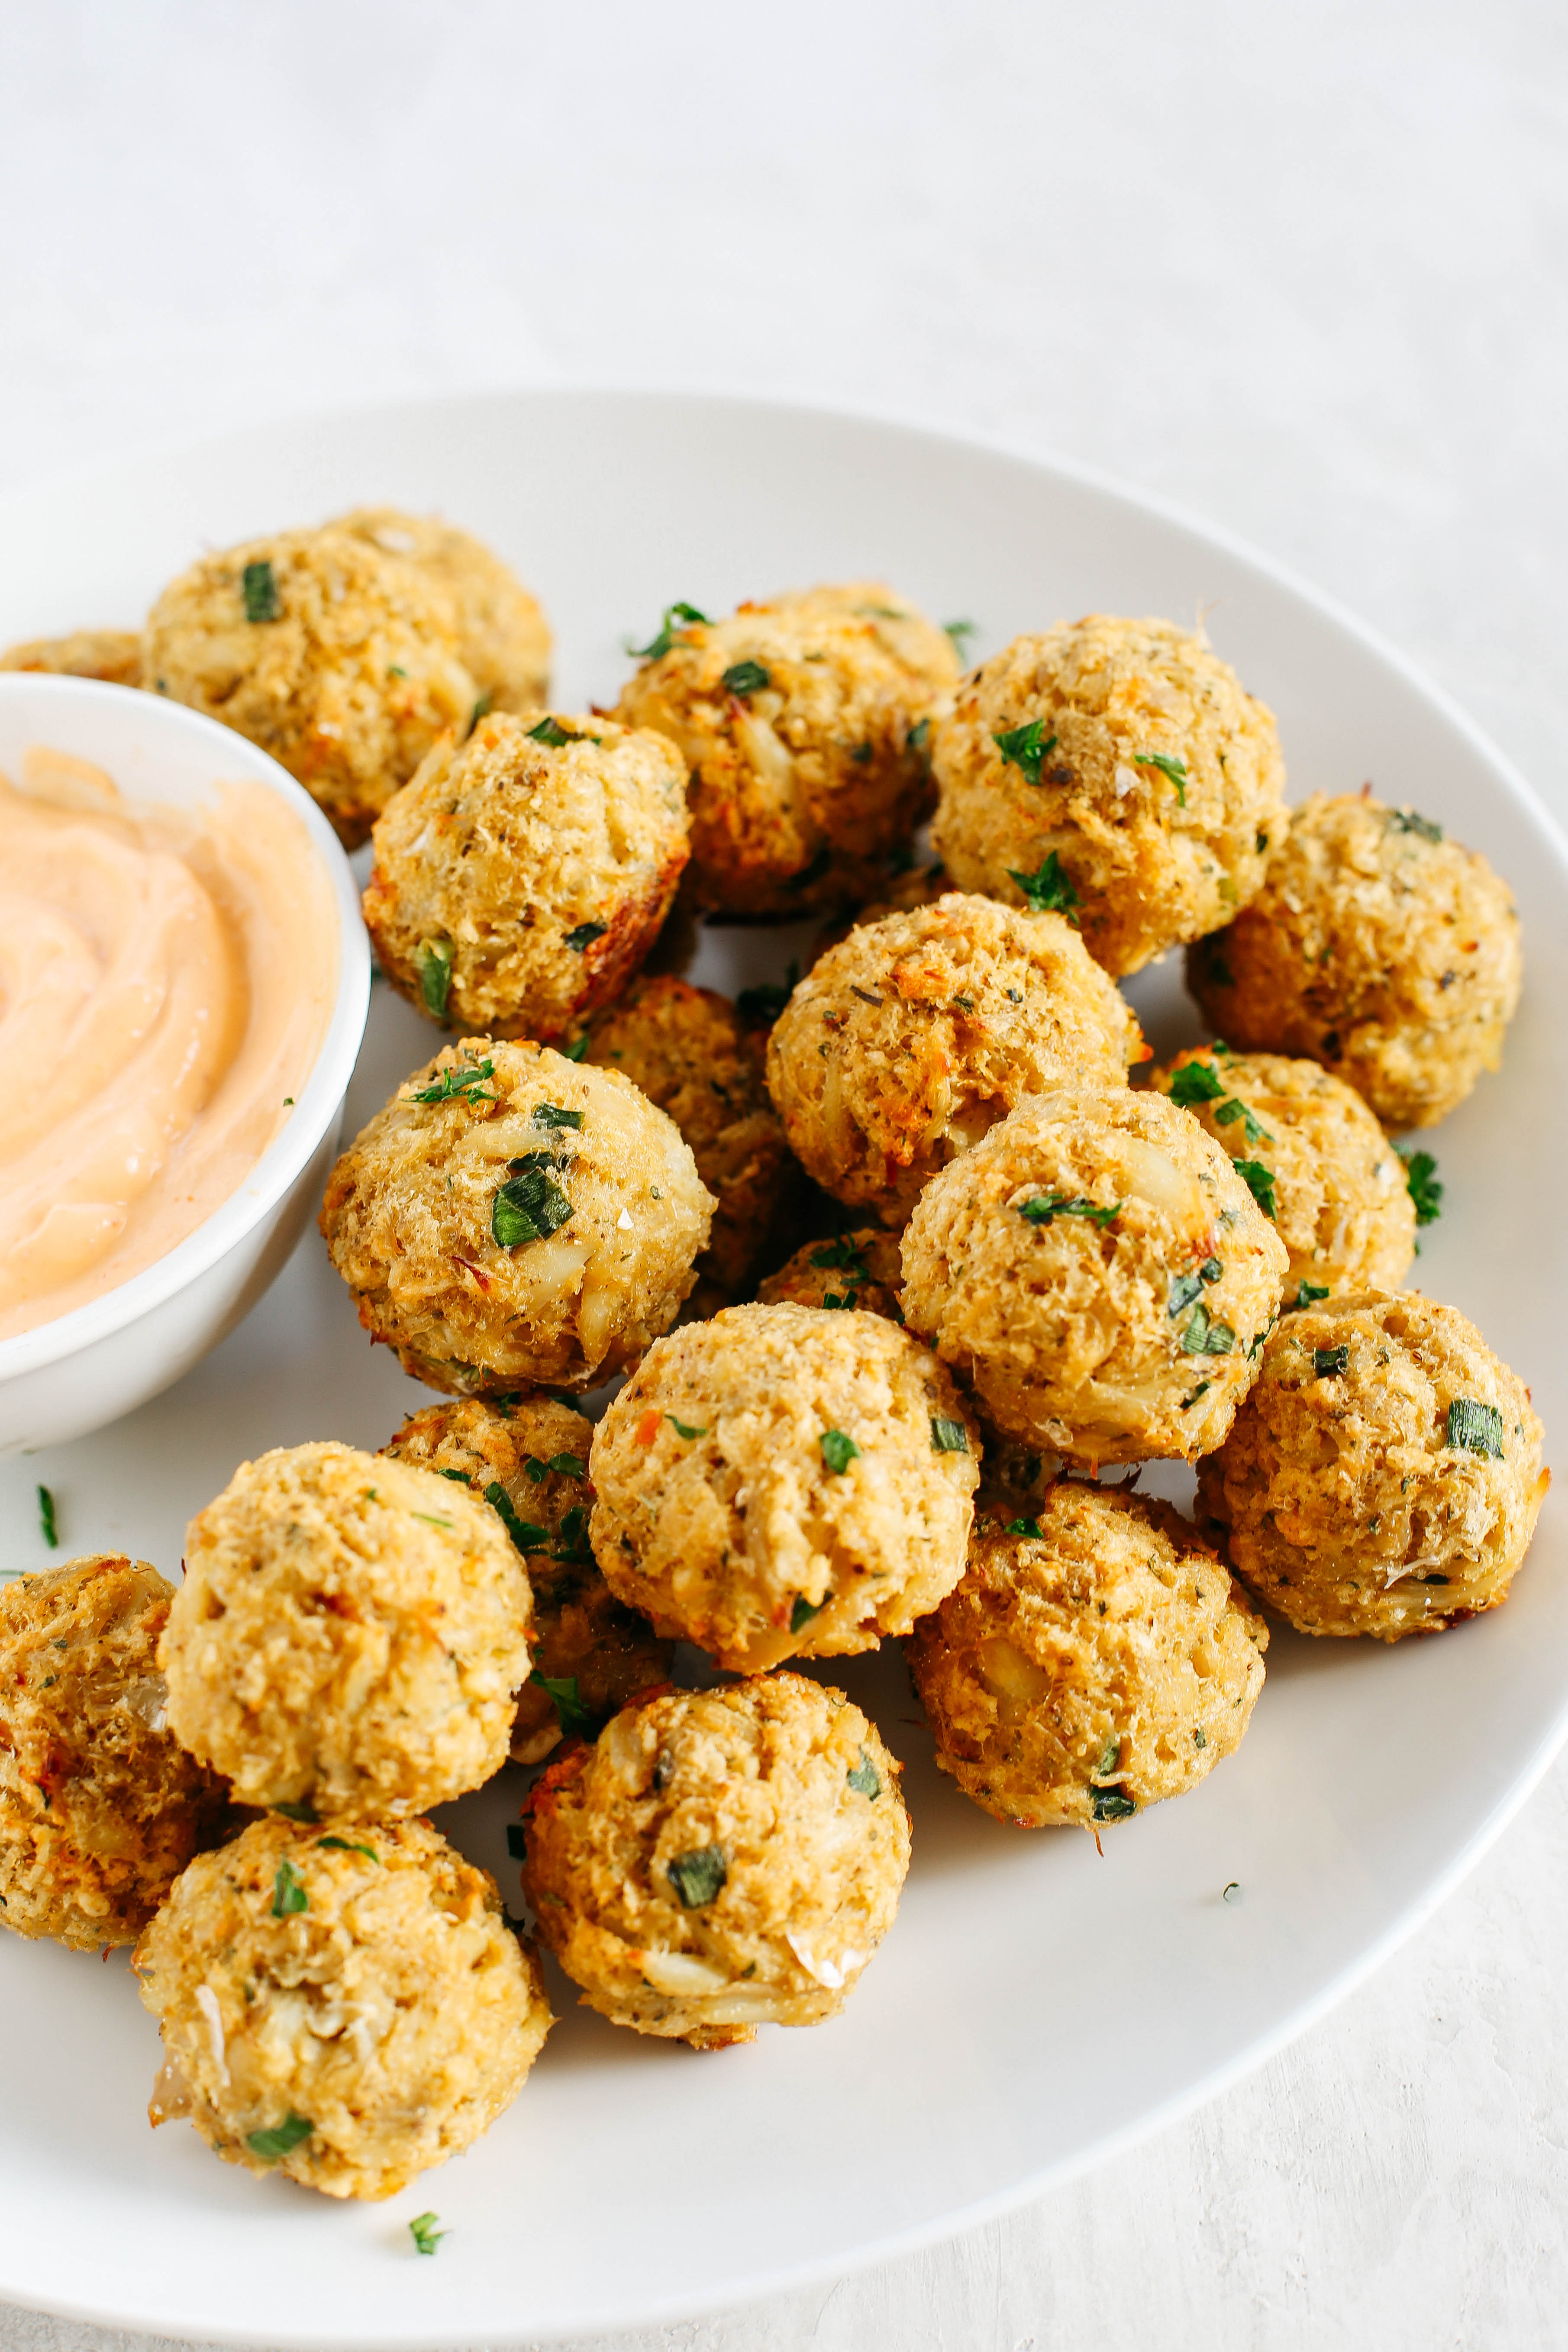 Baked Crab Cake Balls with Sriracha Dipping Sauce